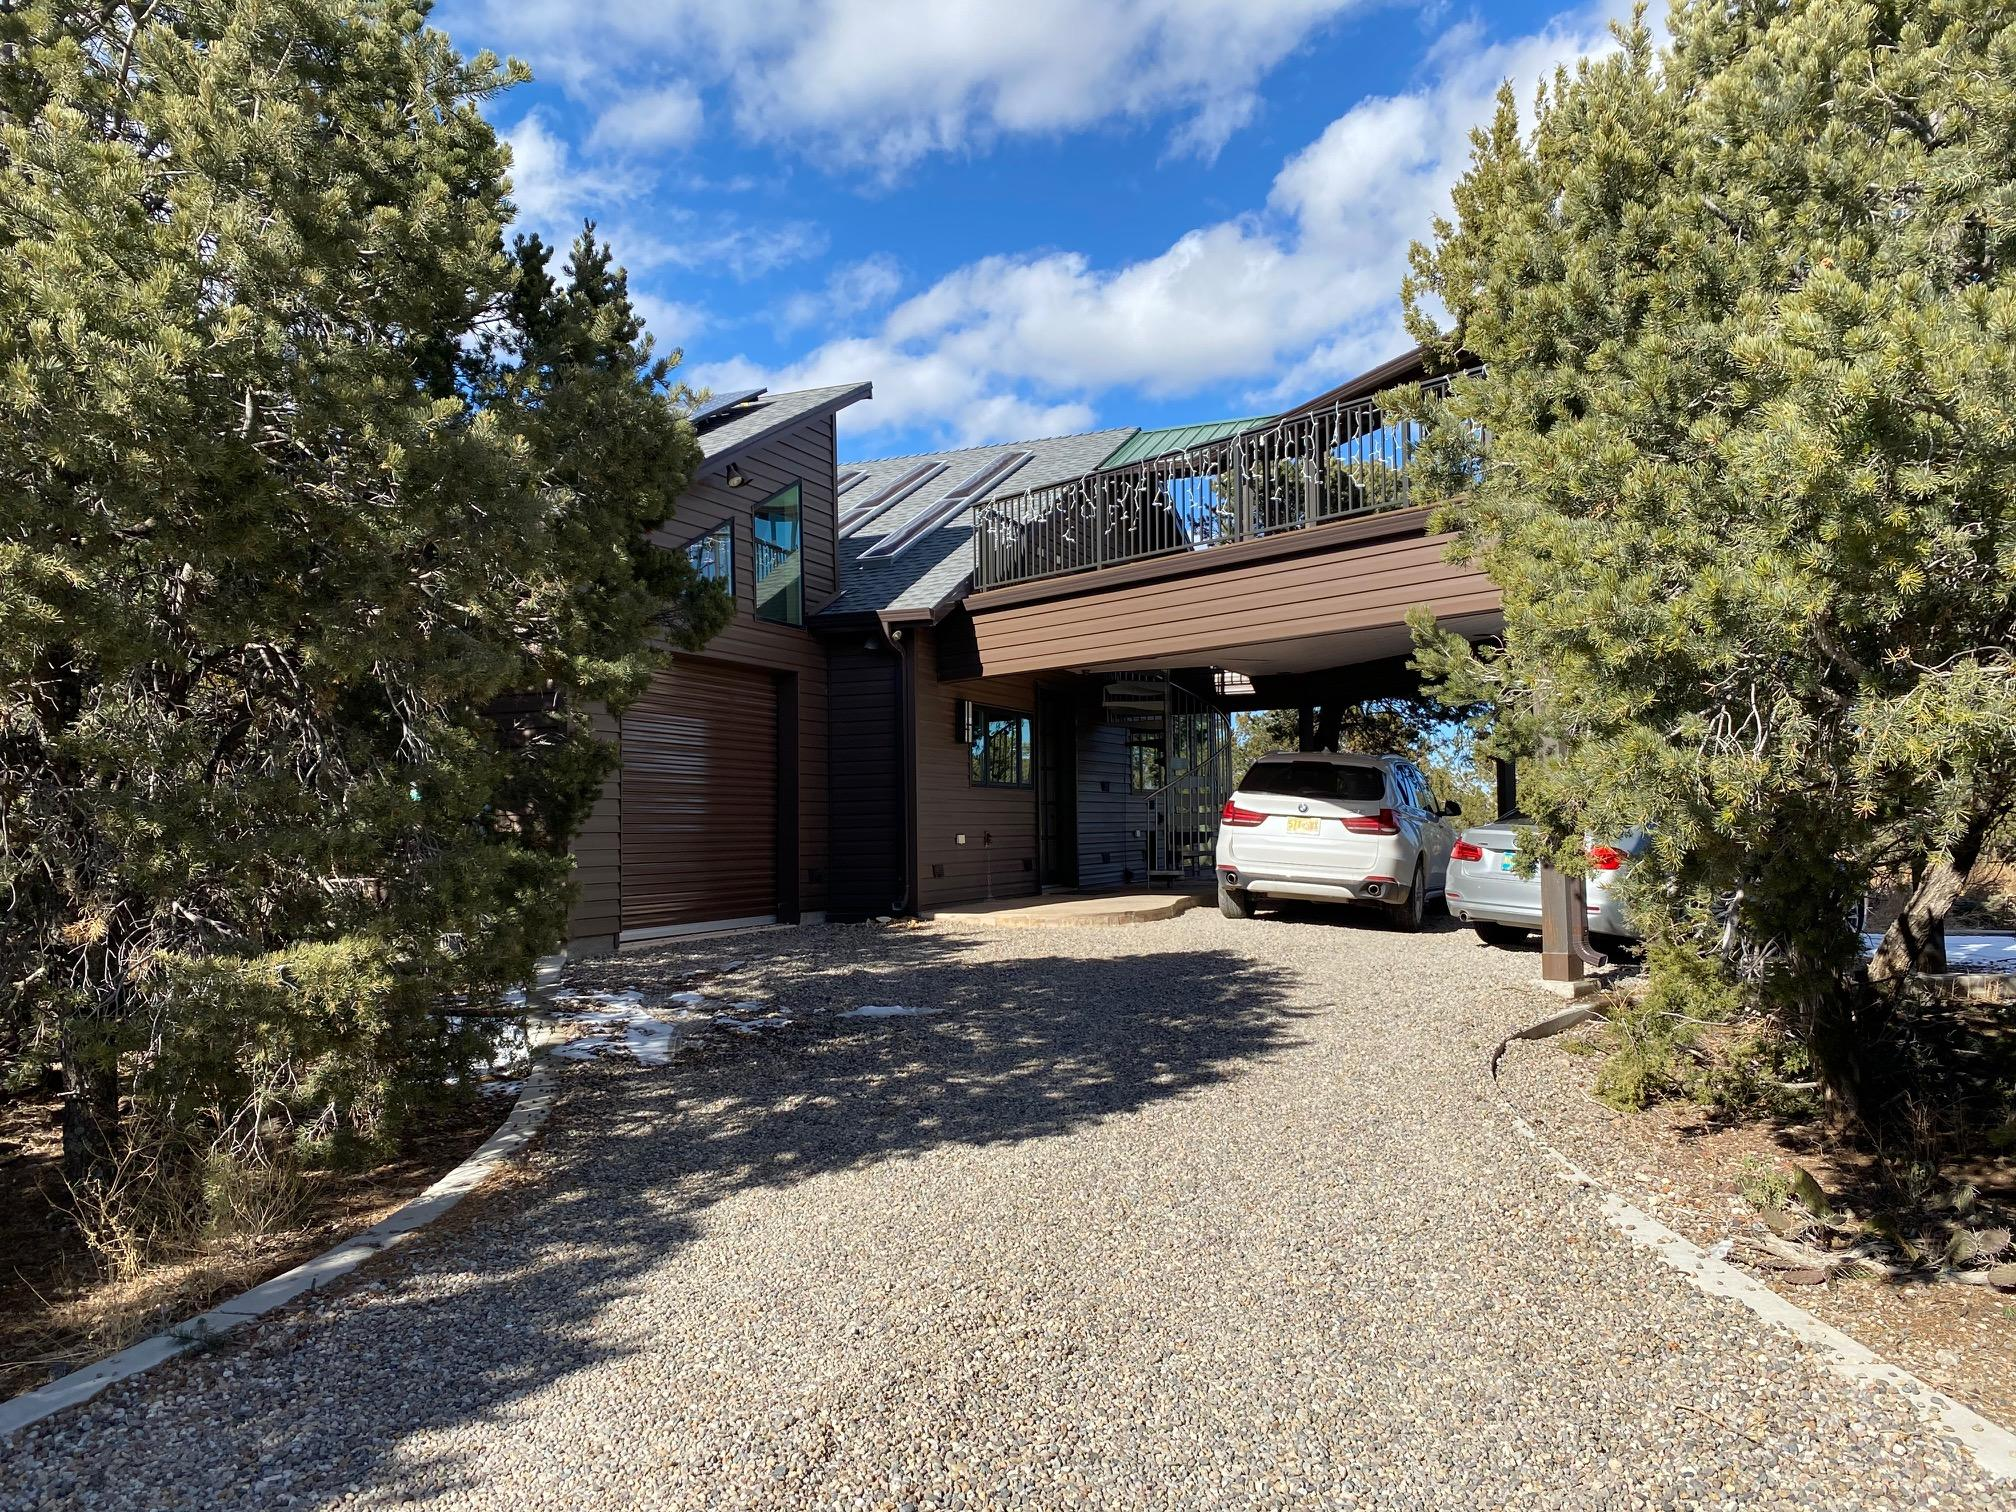 **Price Adjustment** This unique, custom home on 7.5 acres is a one of a kind find. Private, gated subdivision, 3 total lots make up the 7.5 acres. Entranosa water,passive solar  water heater,  radiant floors, and a two way custom gas fireplace.  4 unit Carrier split system also for heat/and ac. Garage is insulated and finished, heated and cooled. Sub zero refrigerator and wine cooler, two built in Miele ovens, lots of direct and indirect lighting. Natural stone tile floors, plastered walls.  Custom trex deck with 360 degree views.